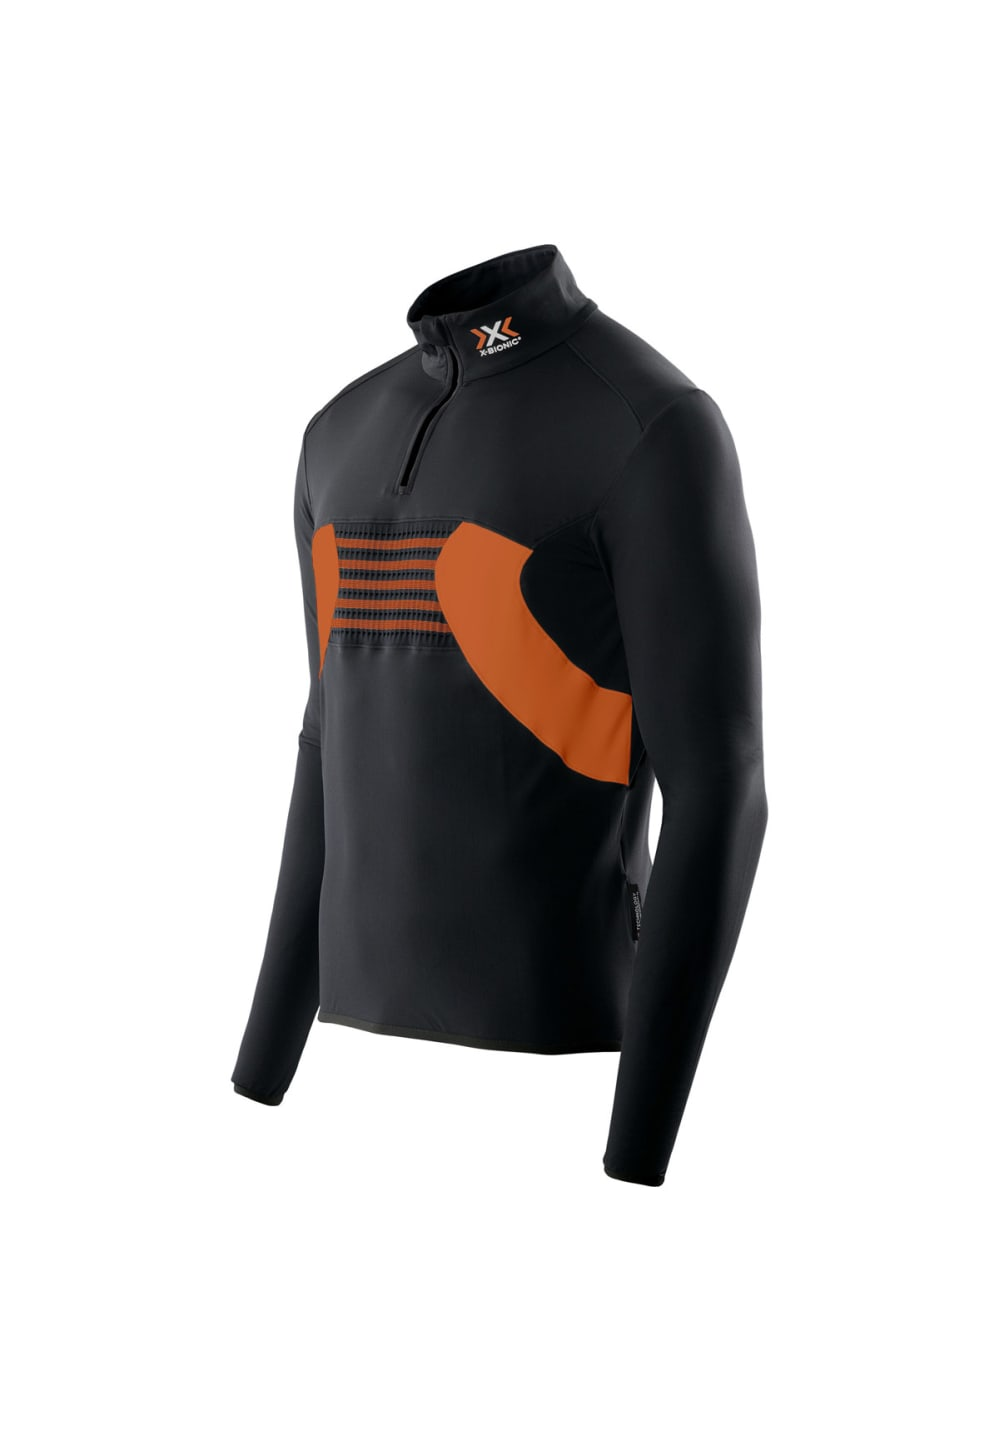 X-Bionic Racoon Ski Shirt Long Sleeves Zip Up Hommes Maillot course